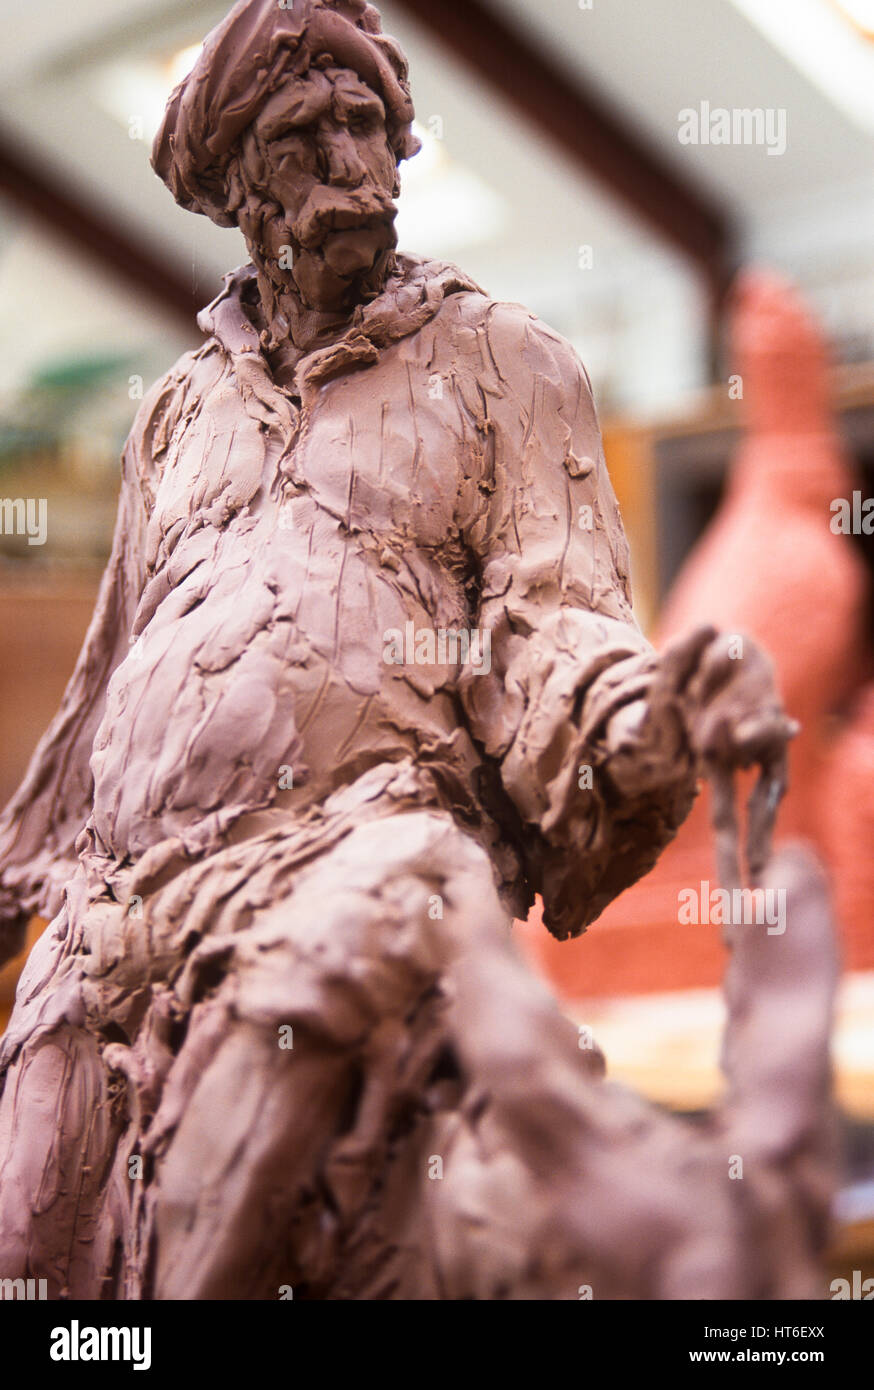 Clay sculpture of a man. - Stock Image